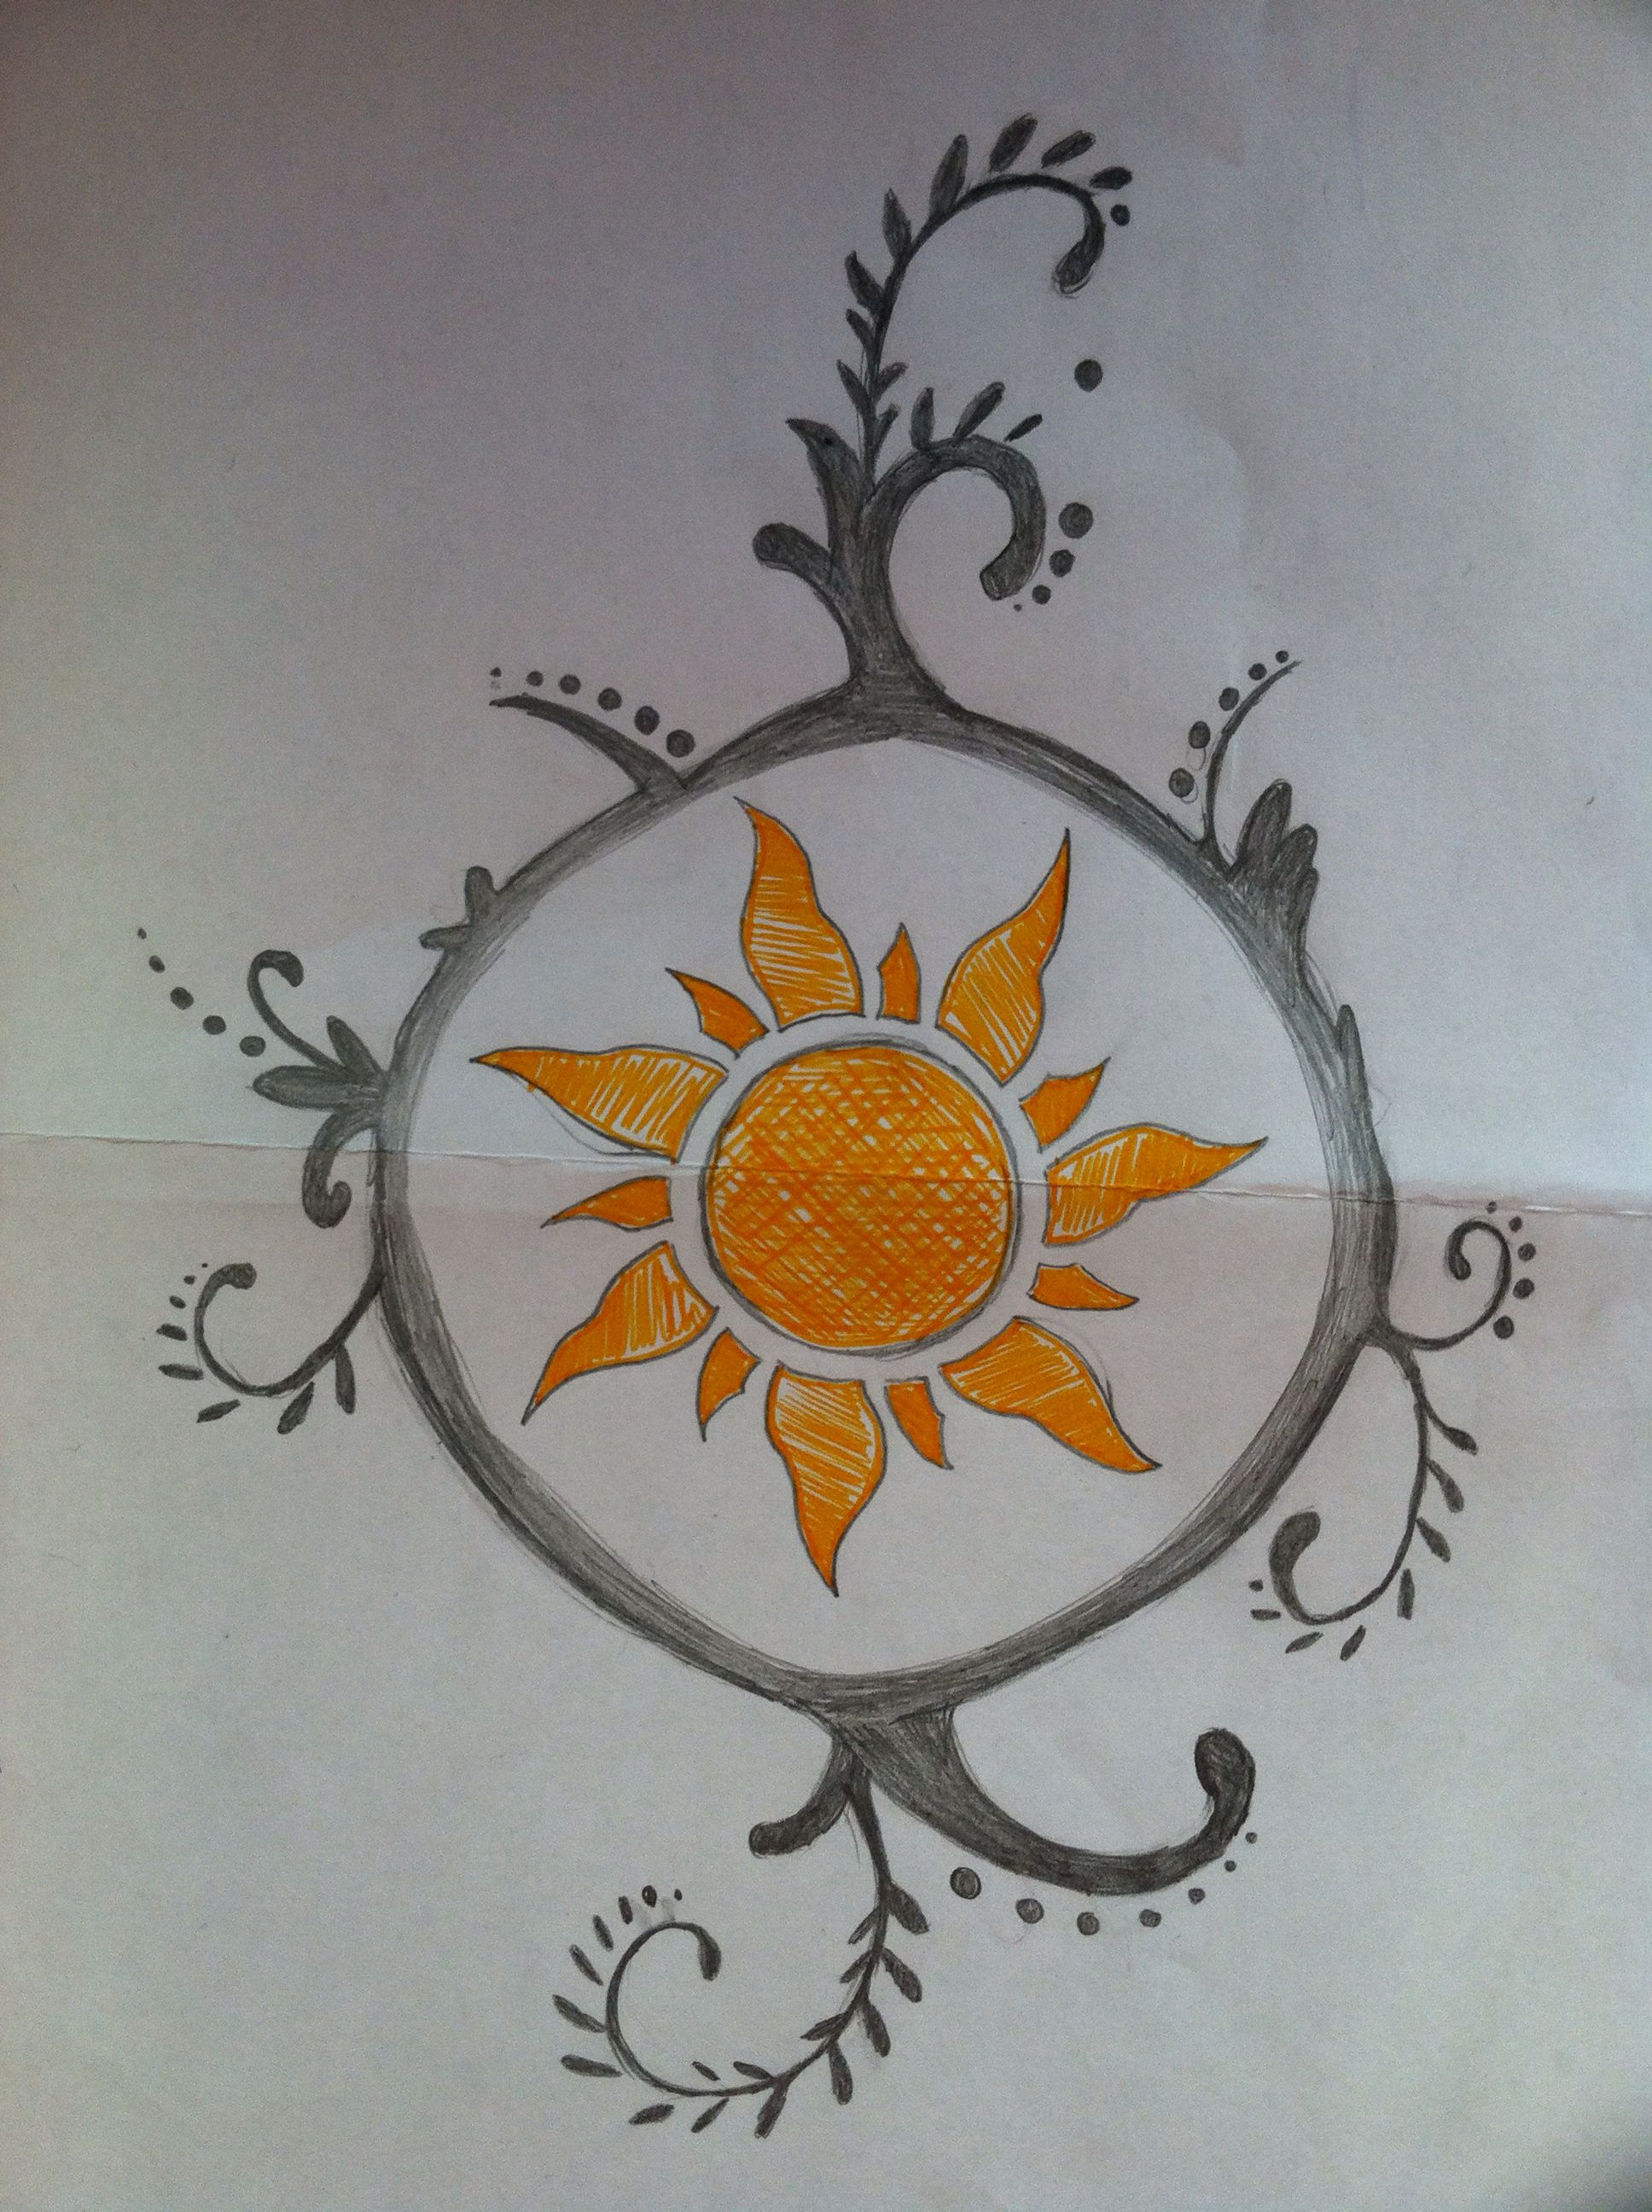 Just a little drawing I did at work.  Tattoo inspired by tangled. Credit: Jacqueline Lavallee